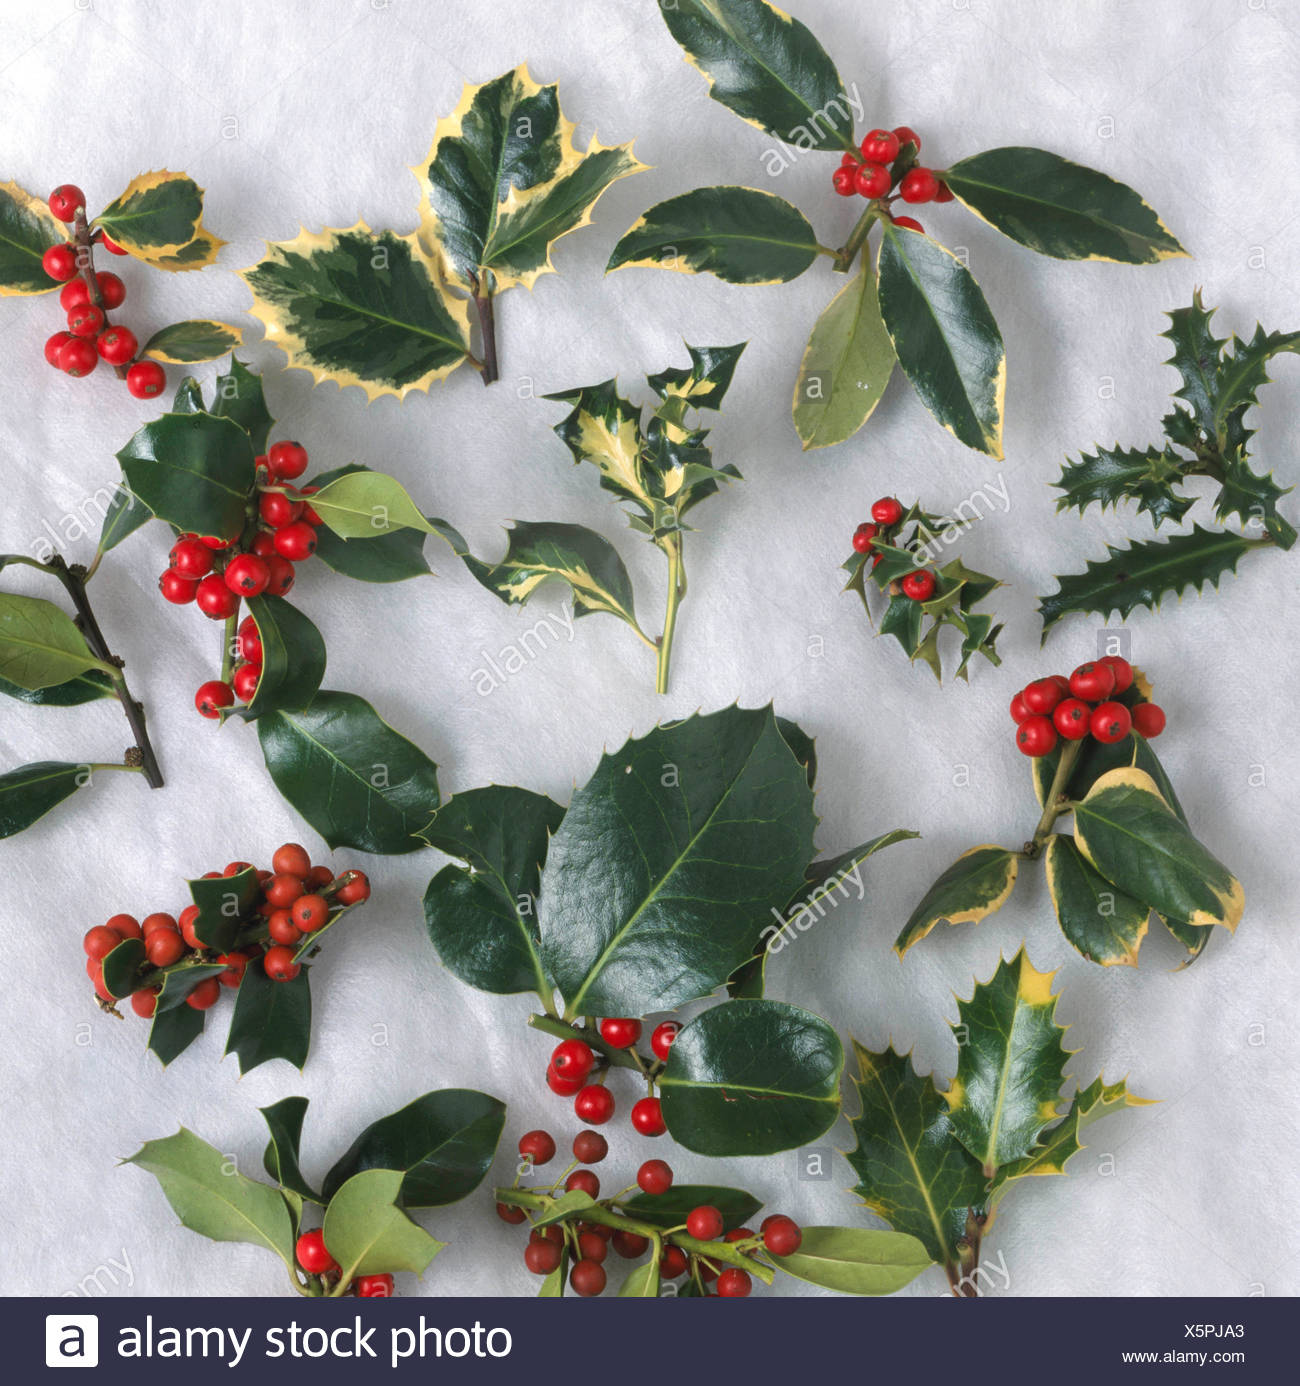 Cutout Holly Berries Mixed Cut Out Silhouette Ilex Trs102196